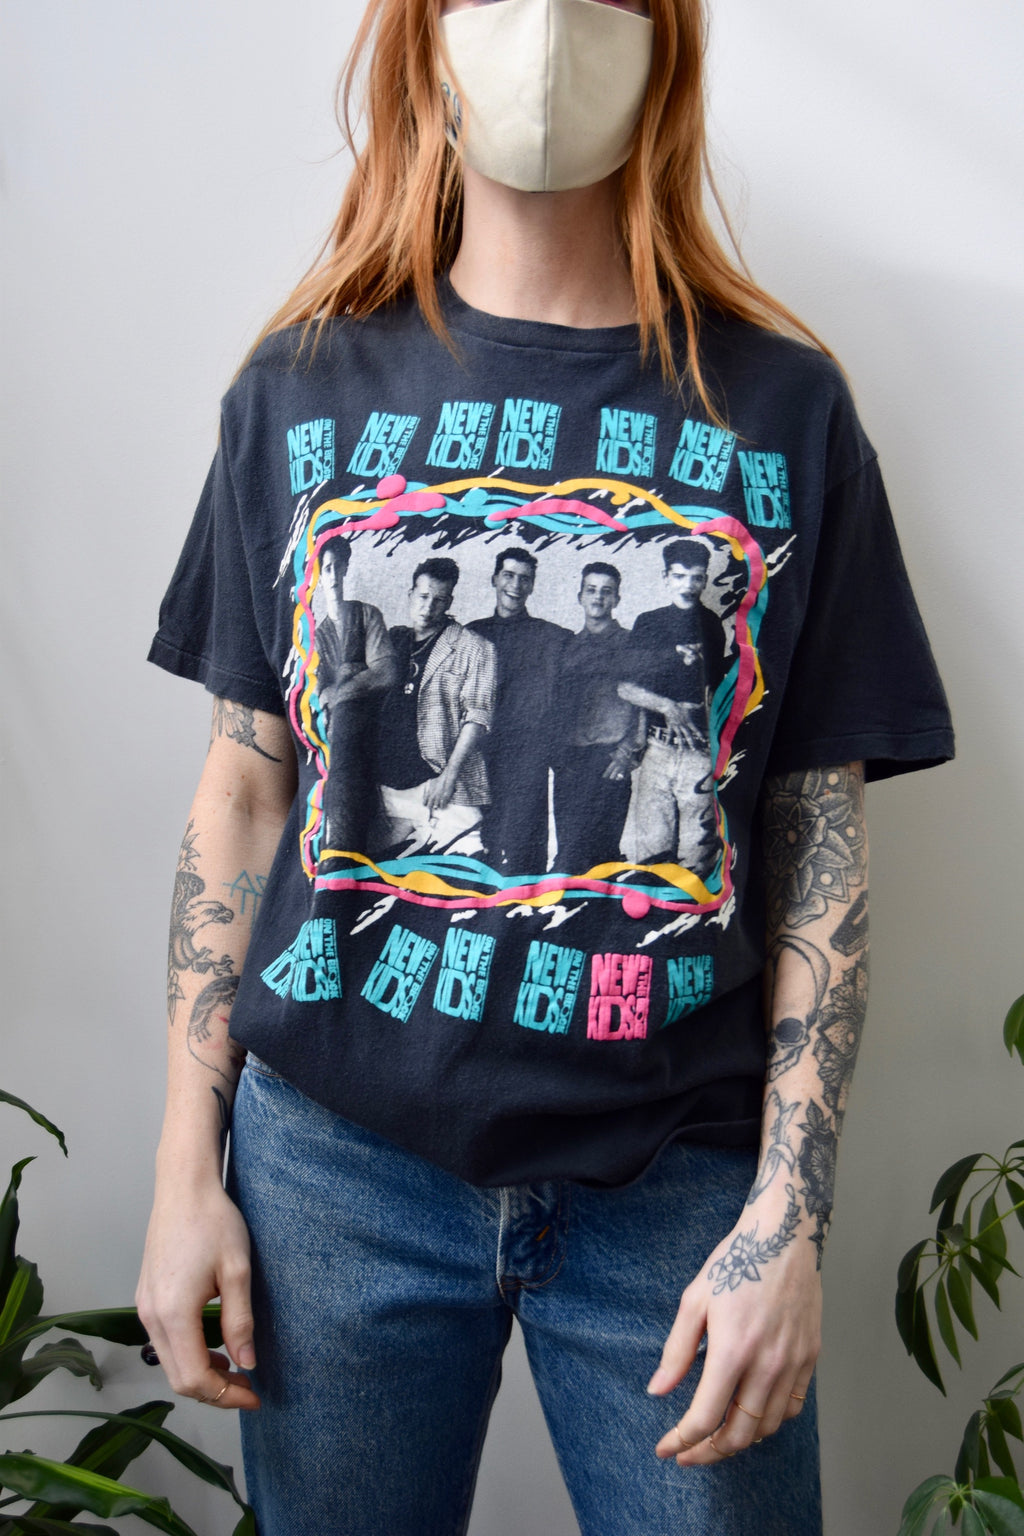 Vintage 1989 New Kids On The Block Tee